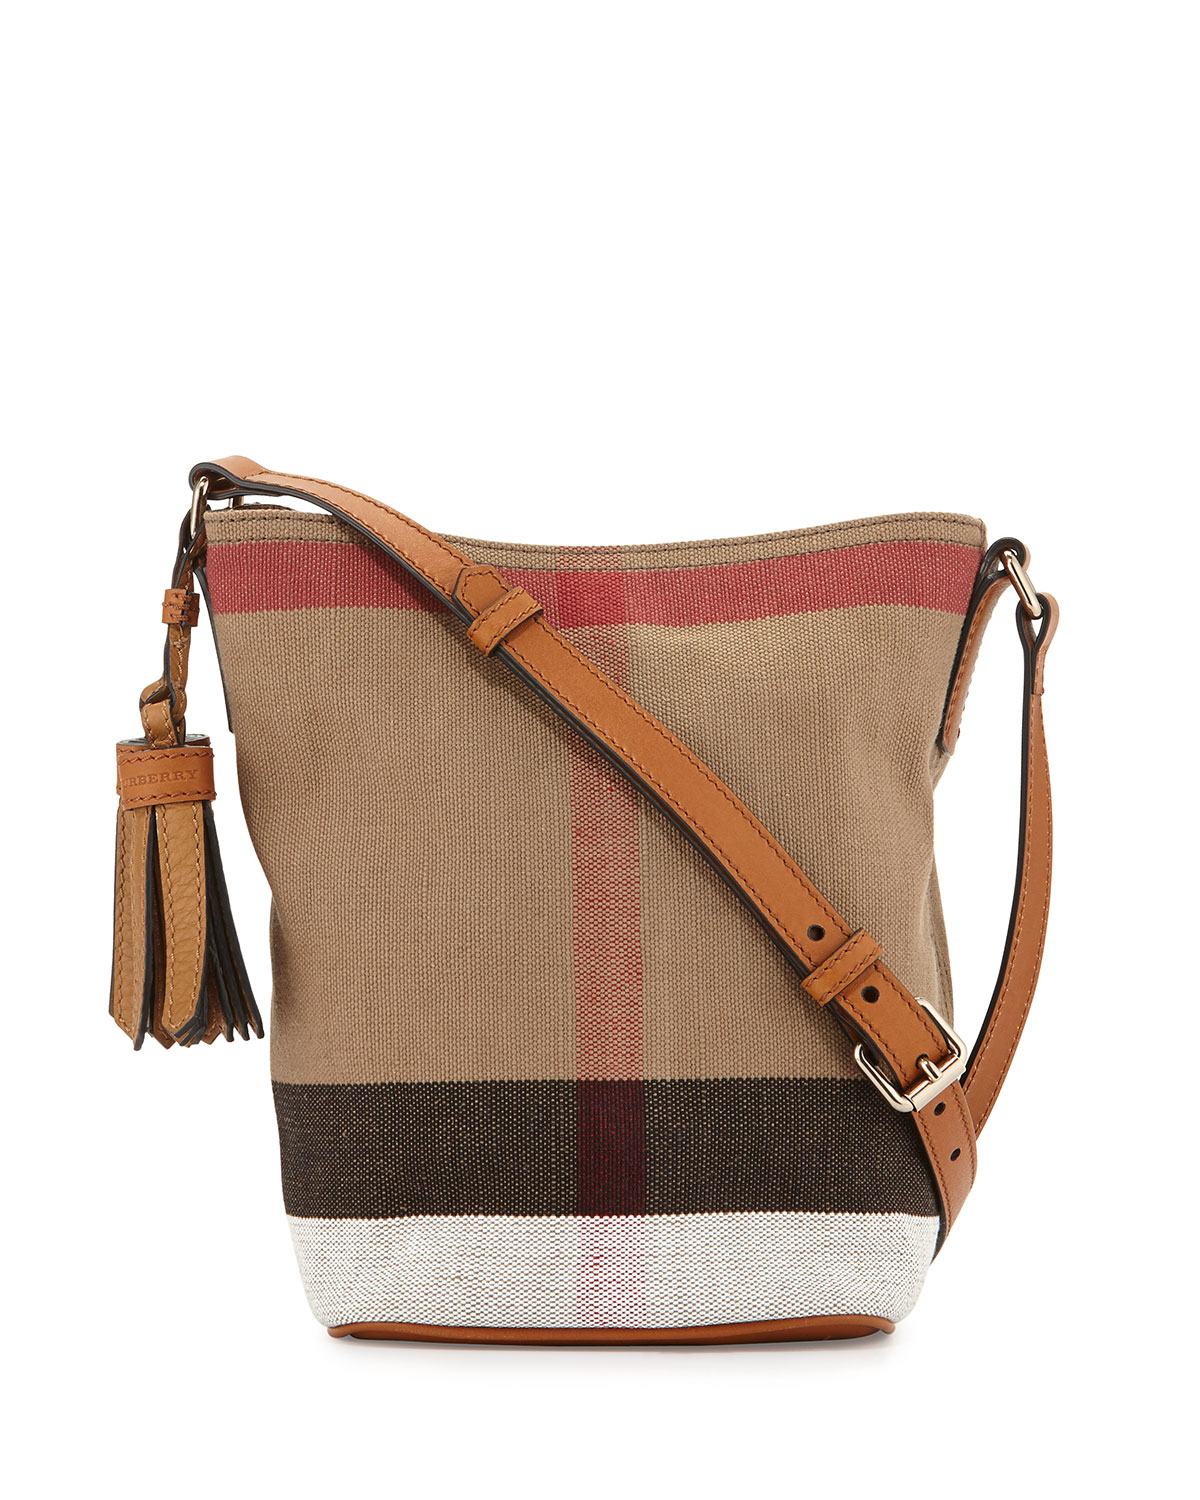 42b2b35a023c Burberry Asby Canvas Check Crossbody Bag